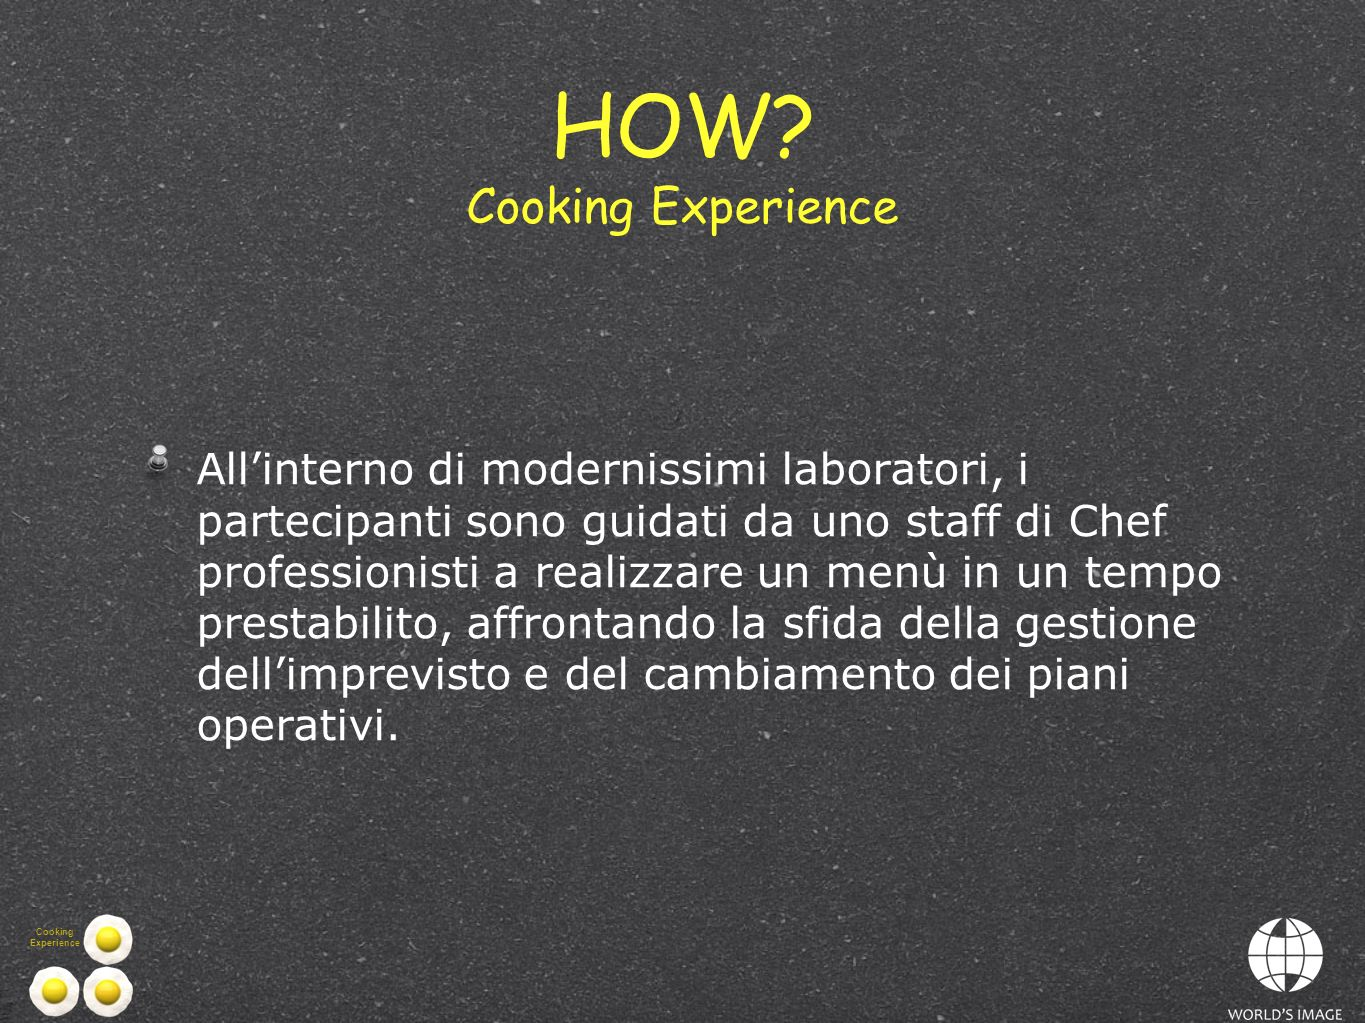 HOW Cooking Experience